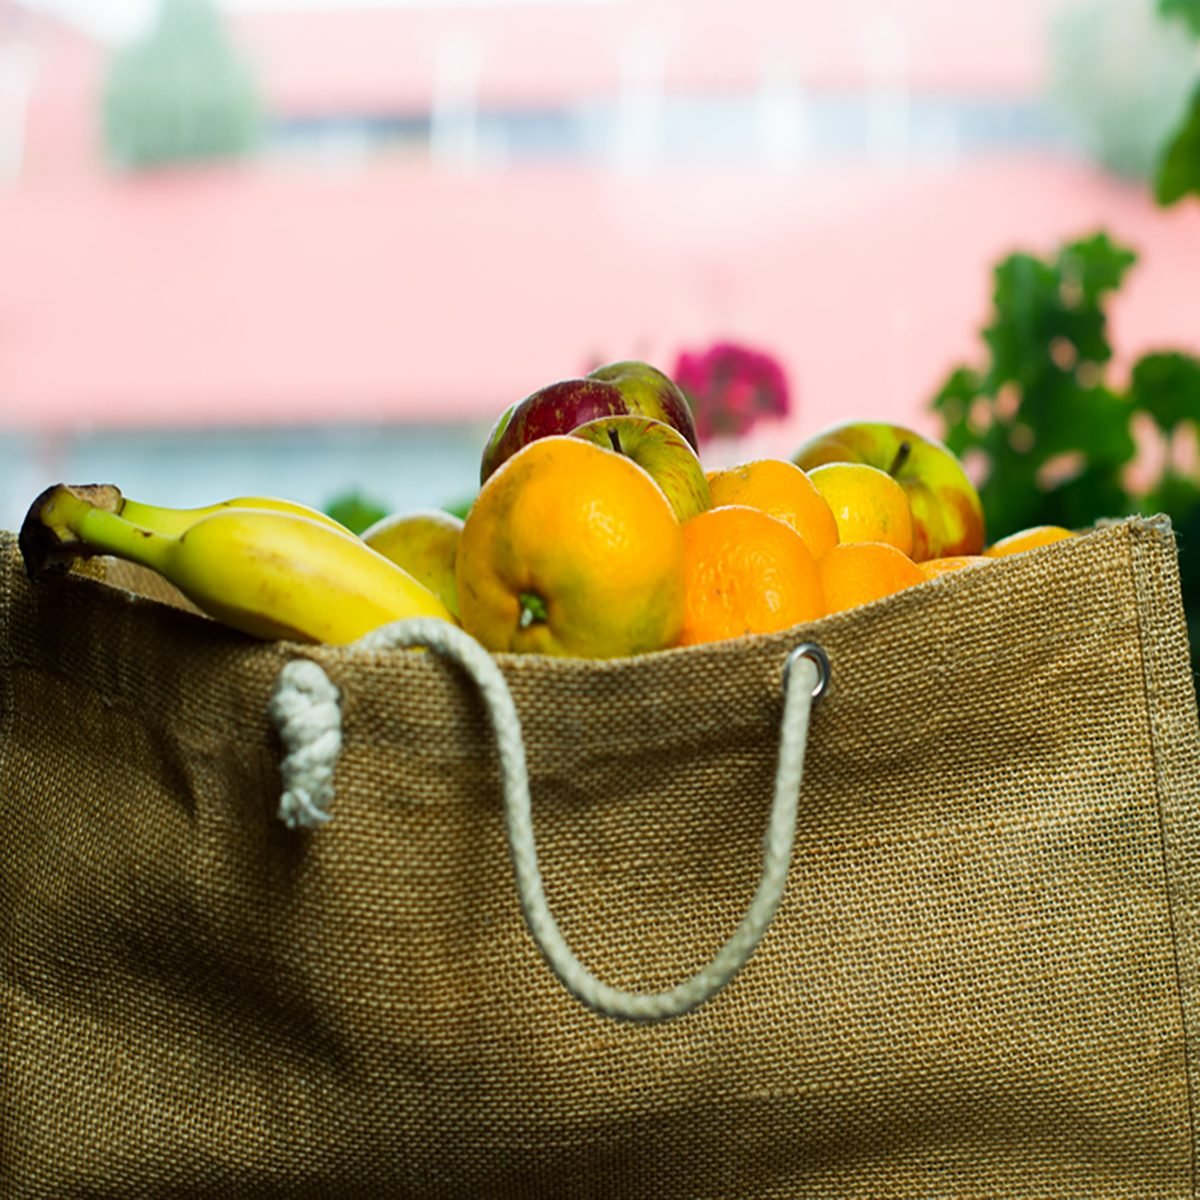 Grocery bag full of fruits